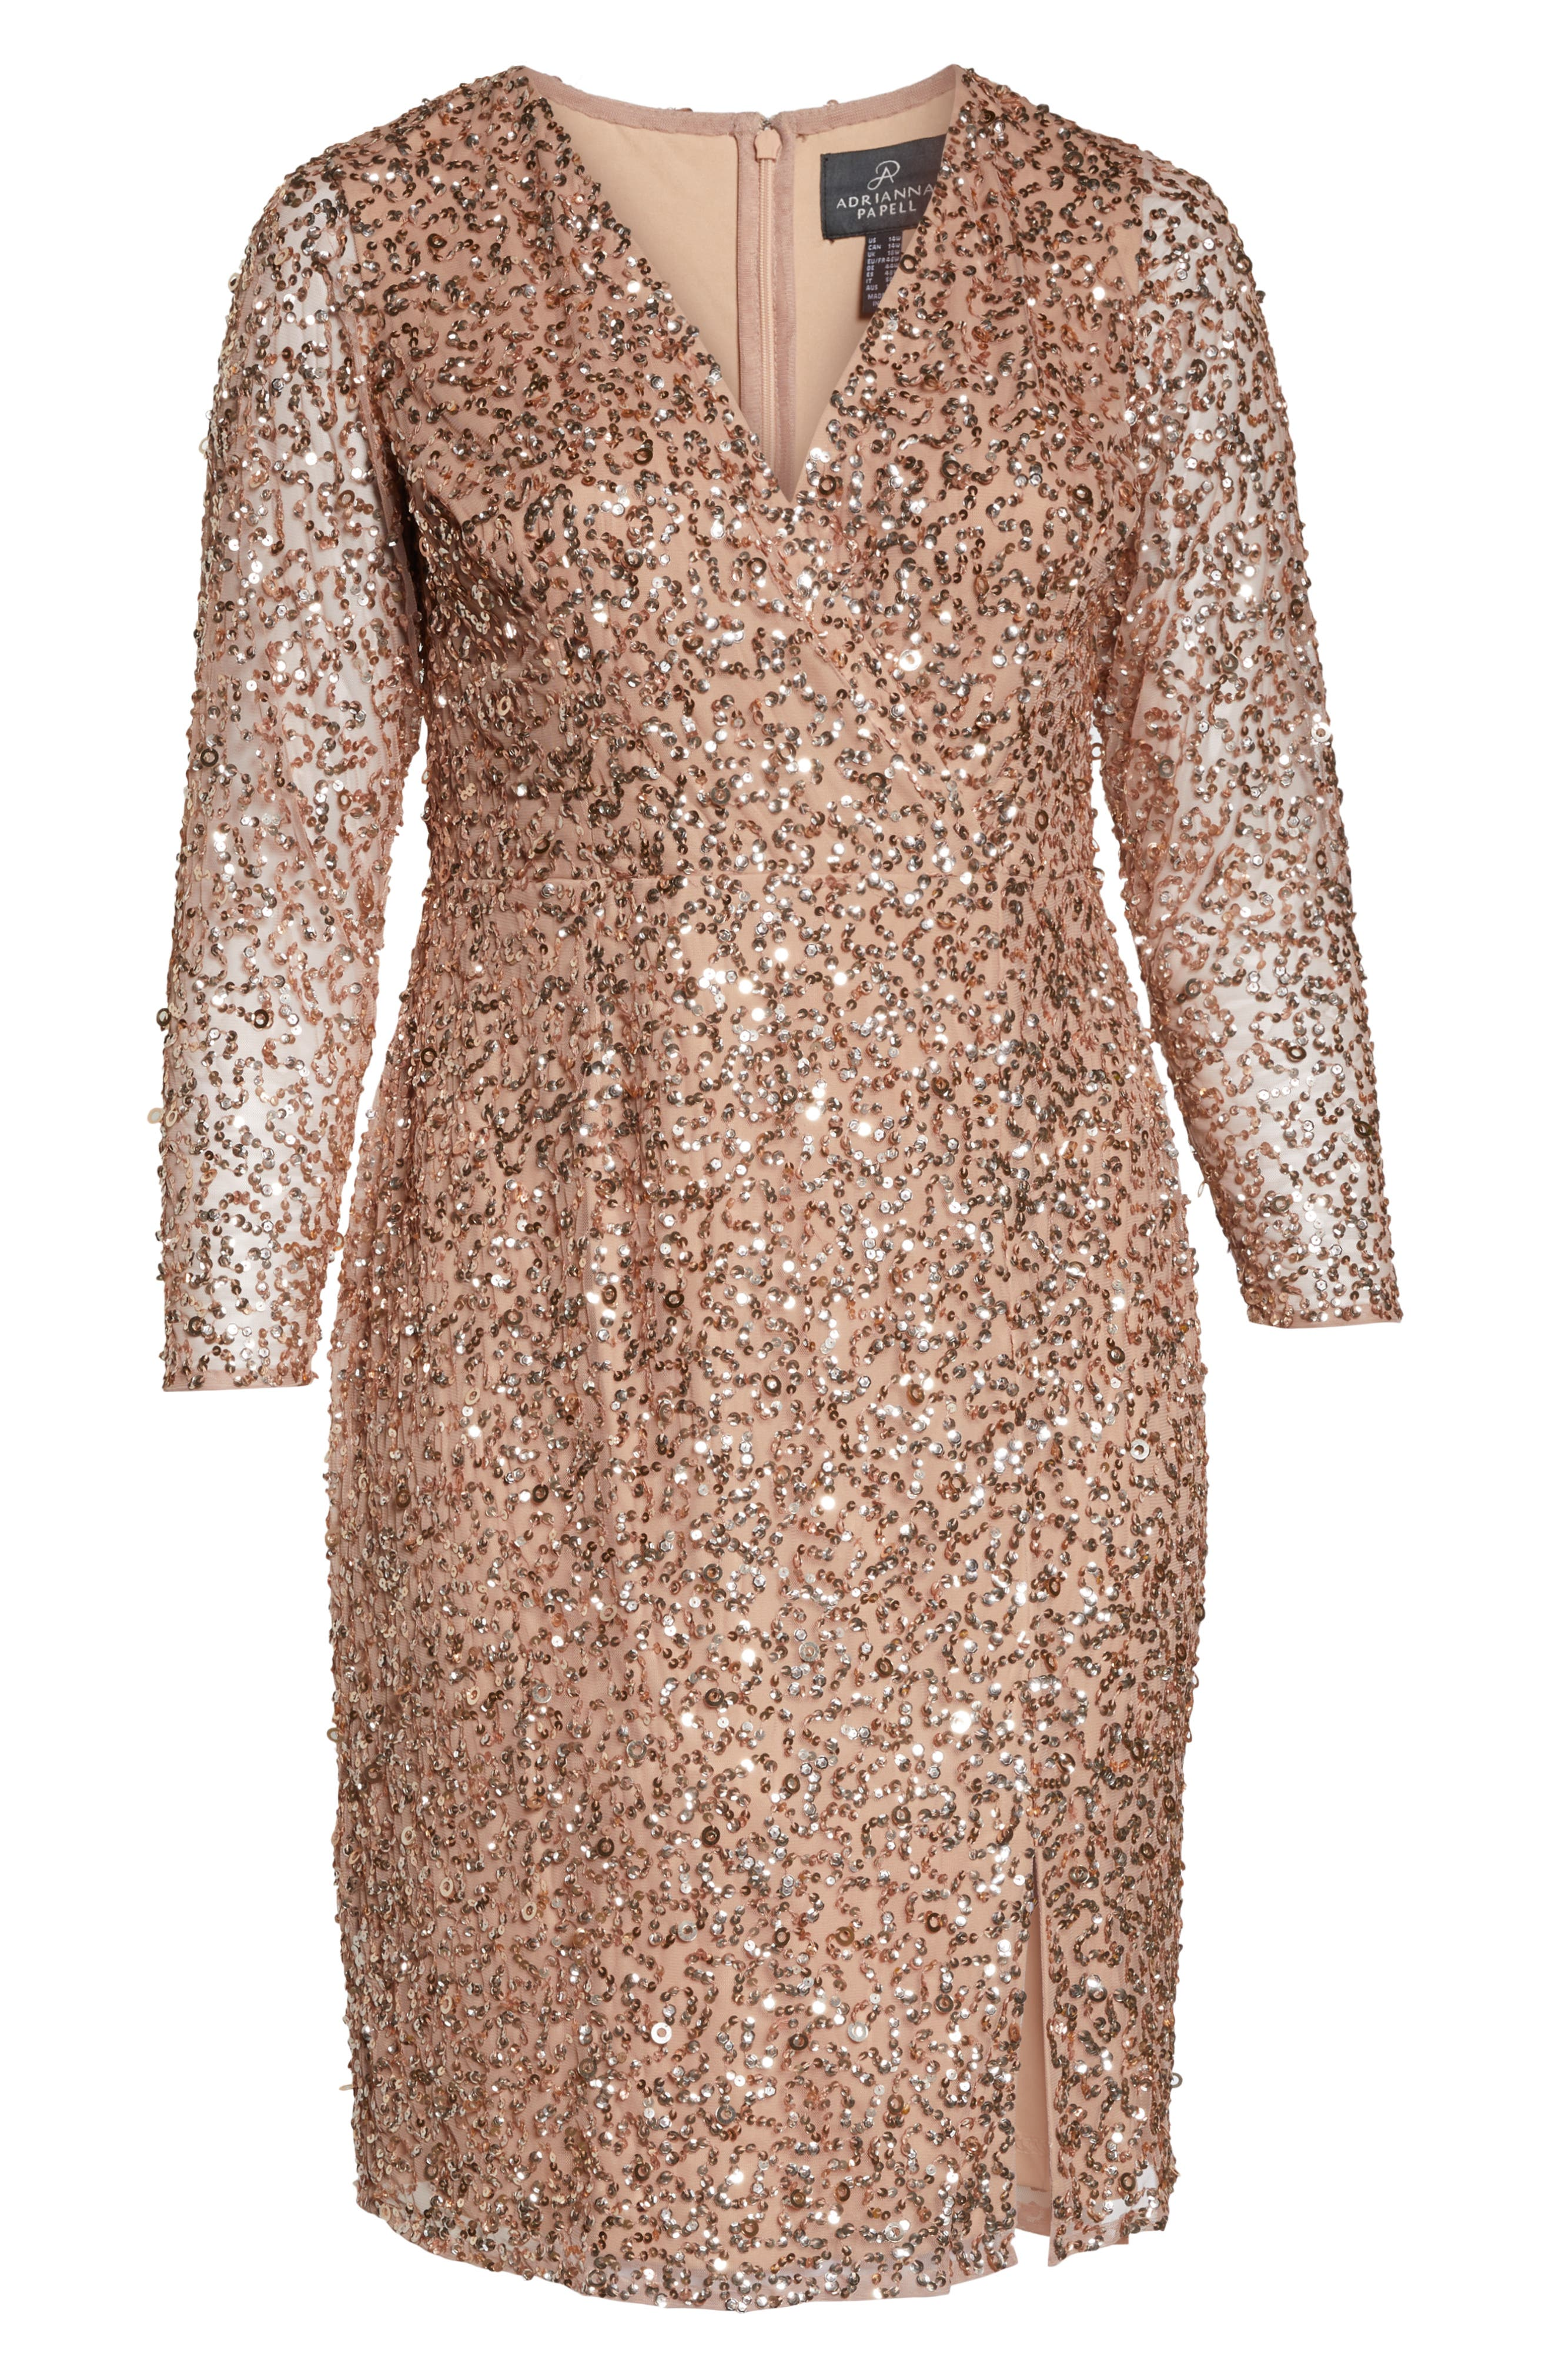 ADRIANNA PAPELL,                             Beaded Mesh Cocktail Dress,                             Alternate thumbnail 7, color,                             ROSE GOLD